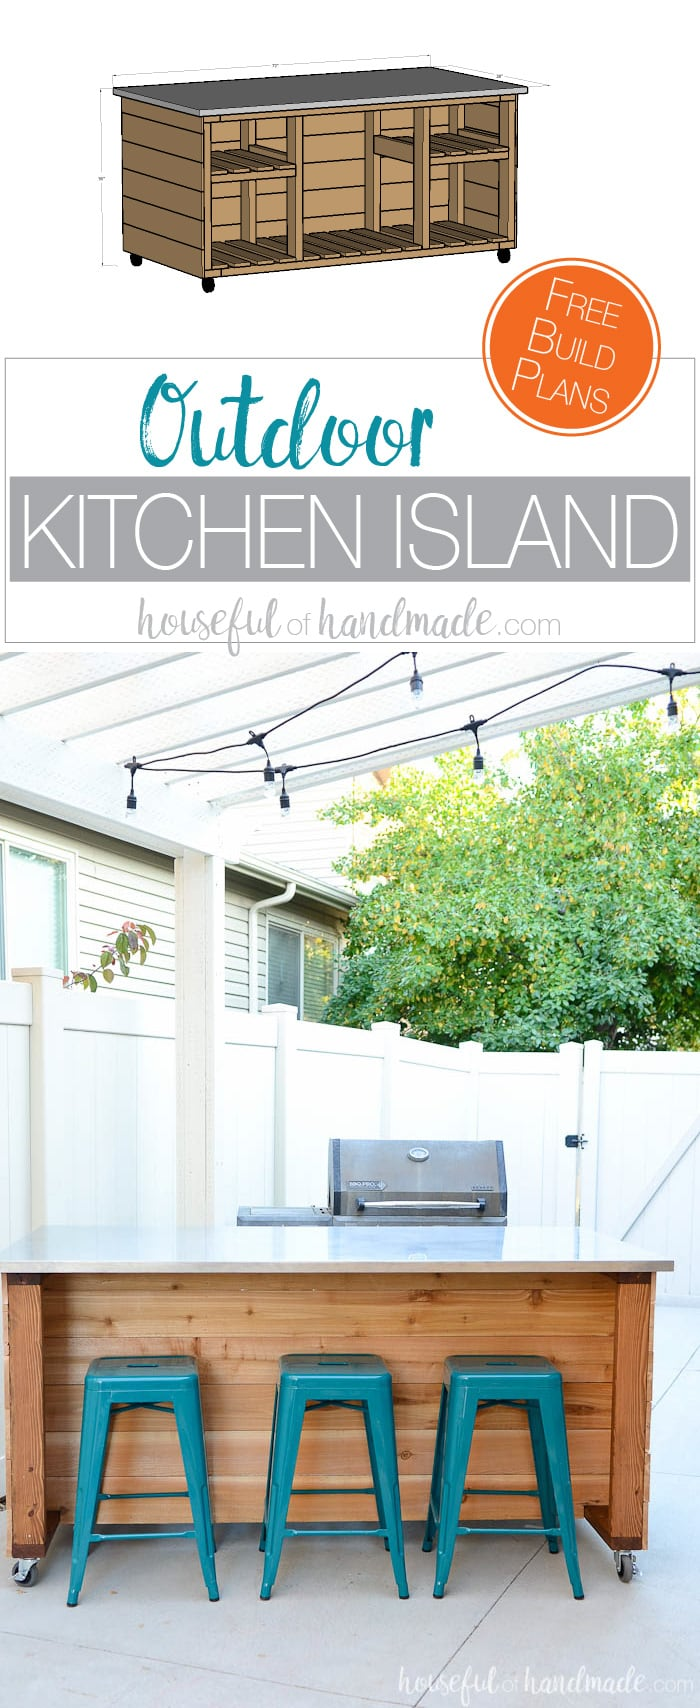 Create the perfect outdoor kitchen area with these outdoor kitchen island build plans. This portable kitchen island will transform your barbecue into a functional outdoor kitchen with this easy to build kitchen island. Housefulofhandmade.com